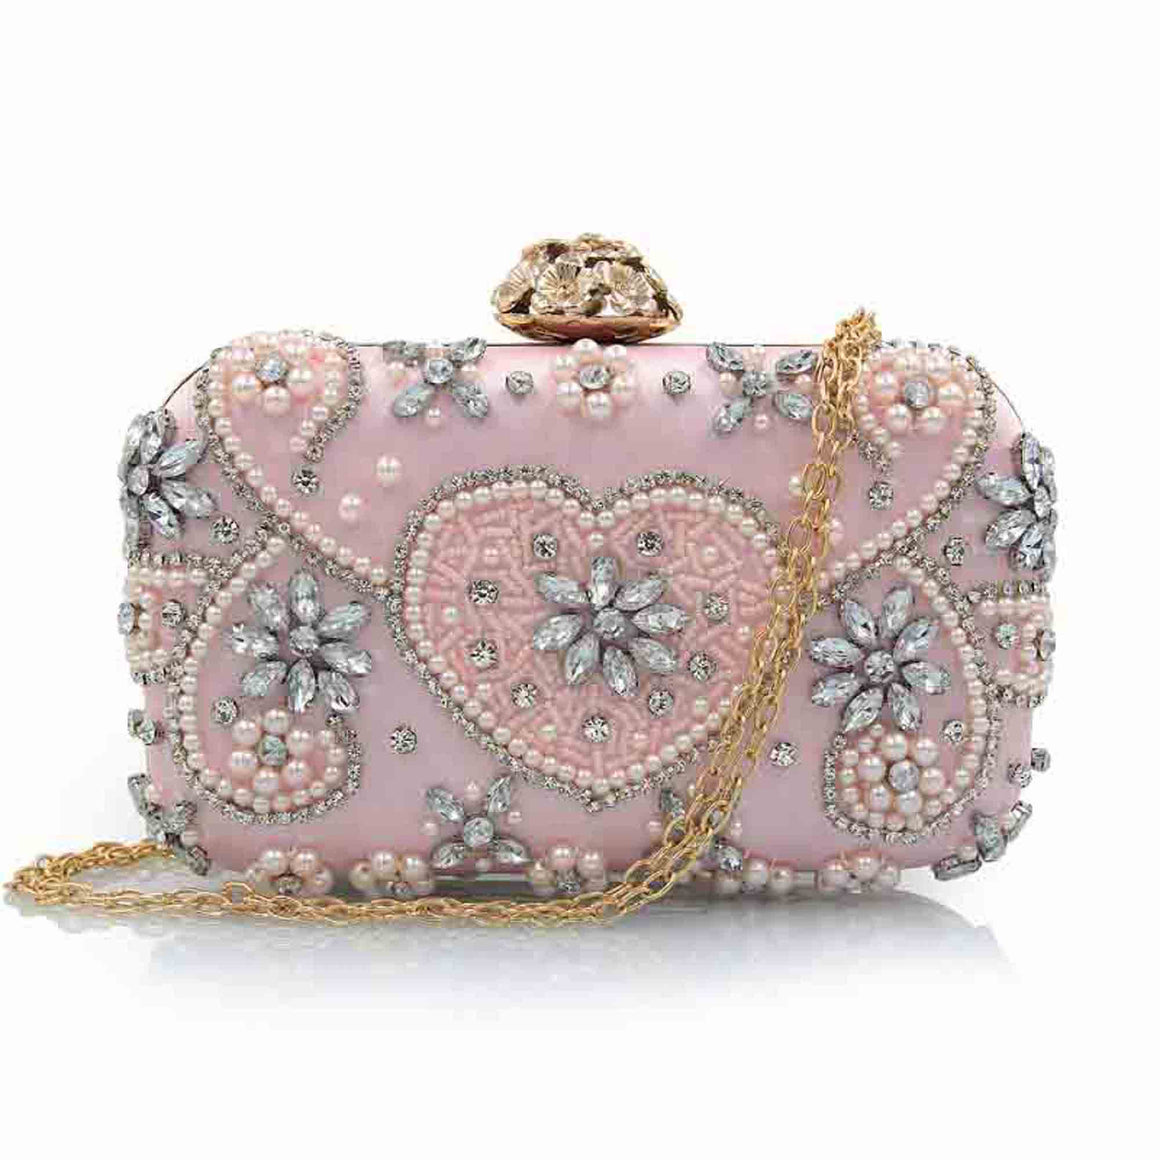 Design Evening Bag Handmade Emerald Gold Pink Heart Crystal Luxury Clutch Bag Diamond Ladies Handbags Party Wedding Purse